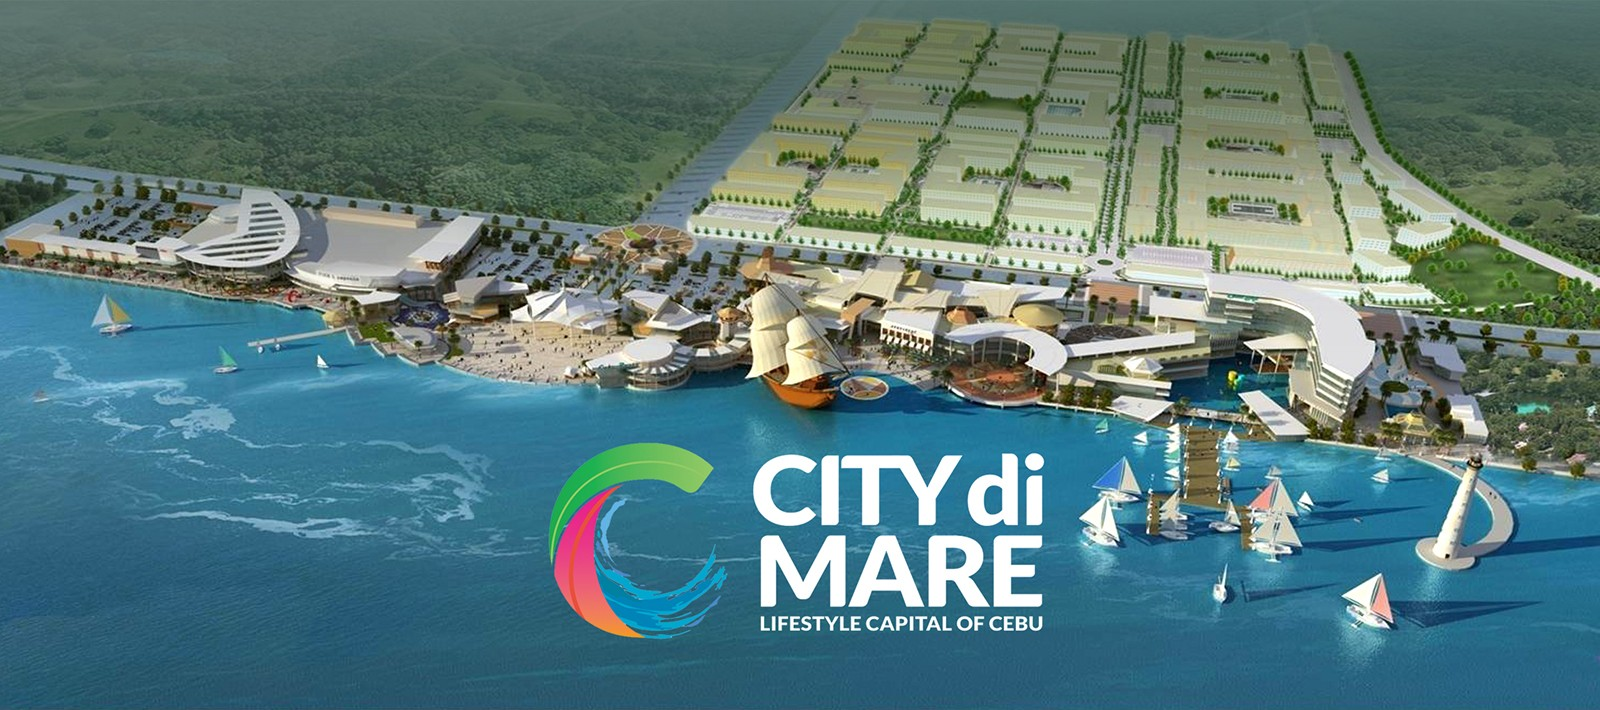 City-di-mare-property-destination-branding-2